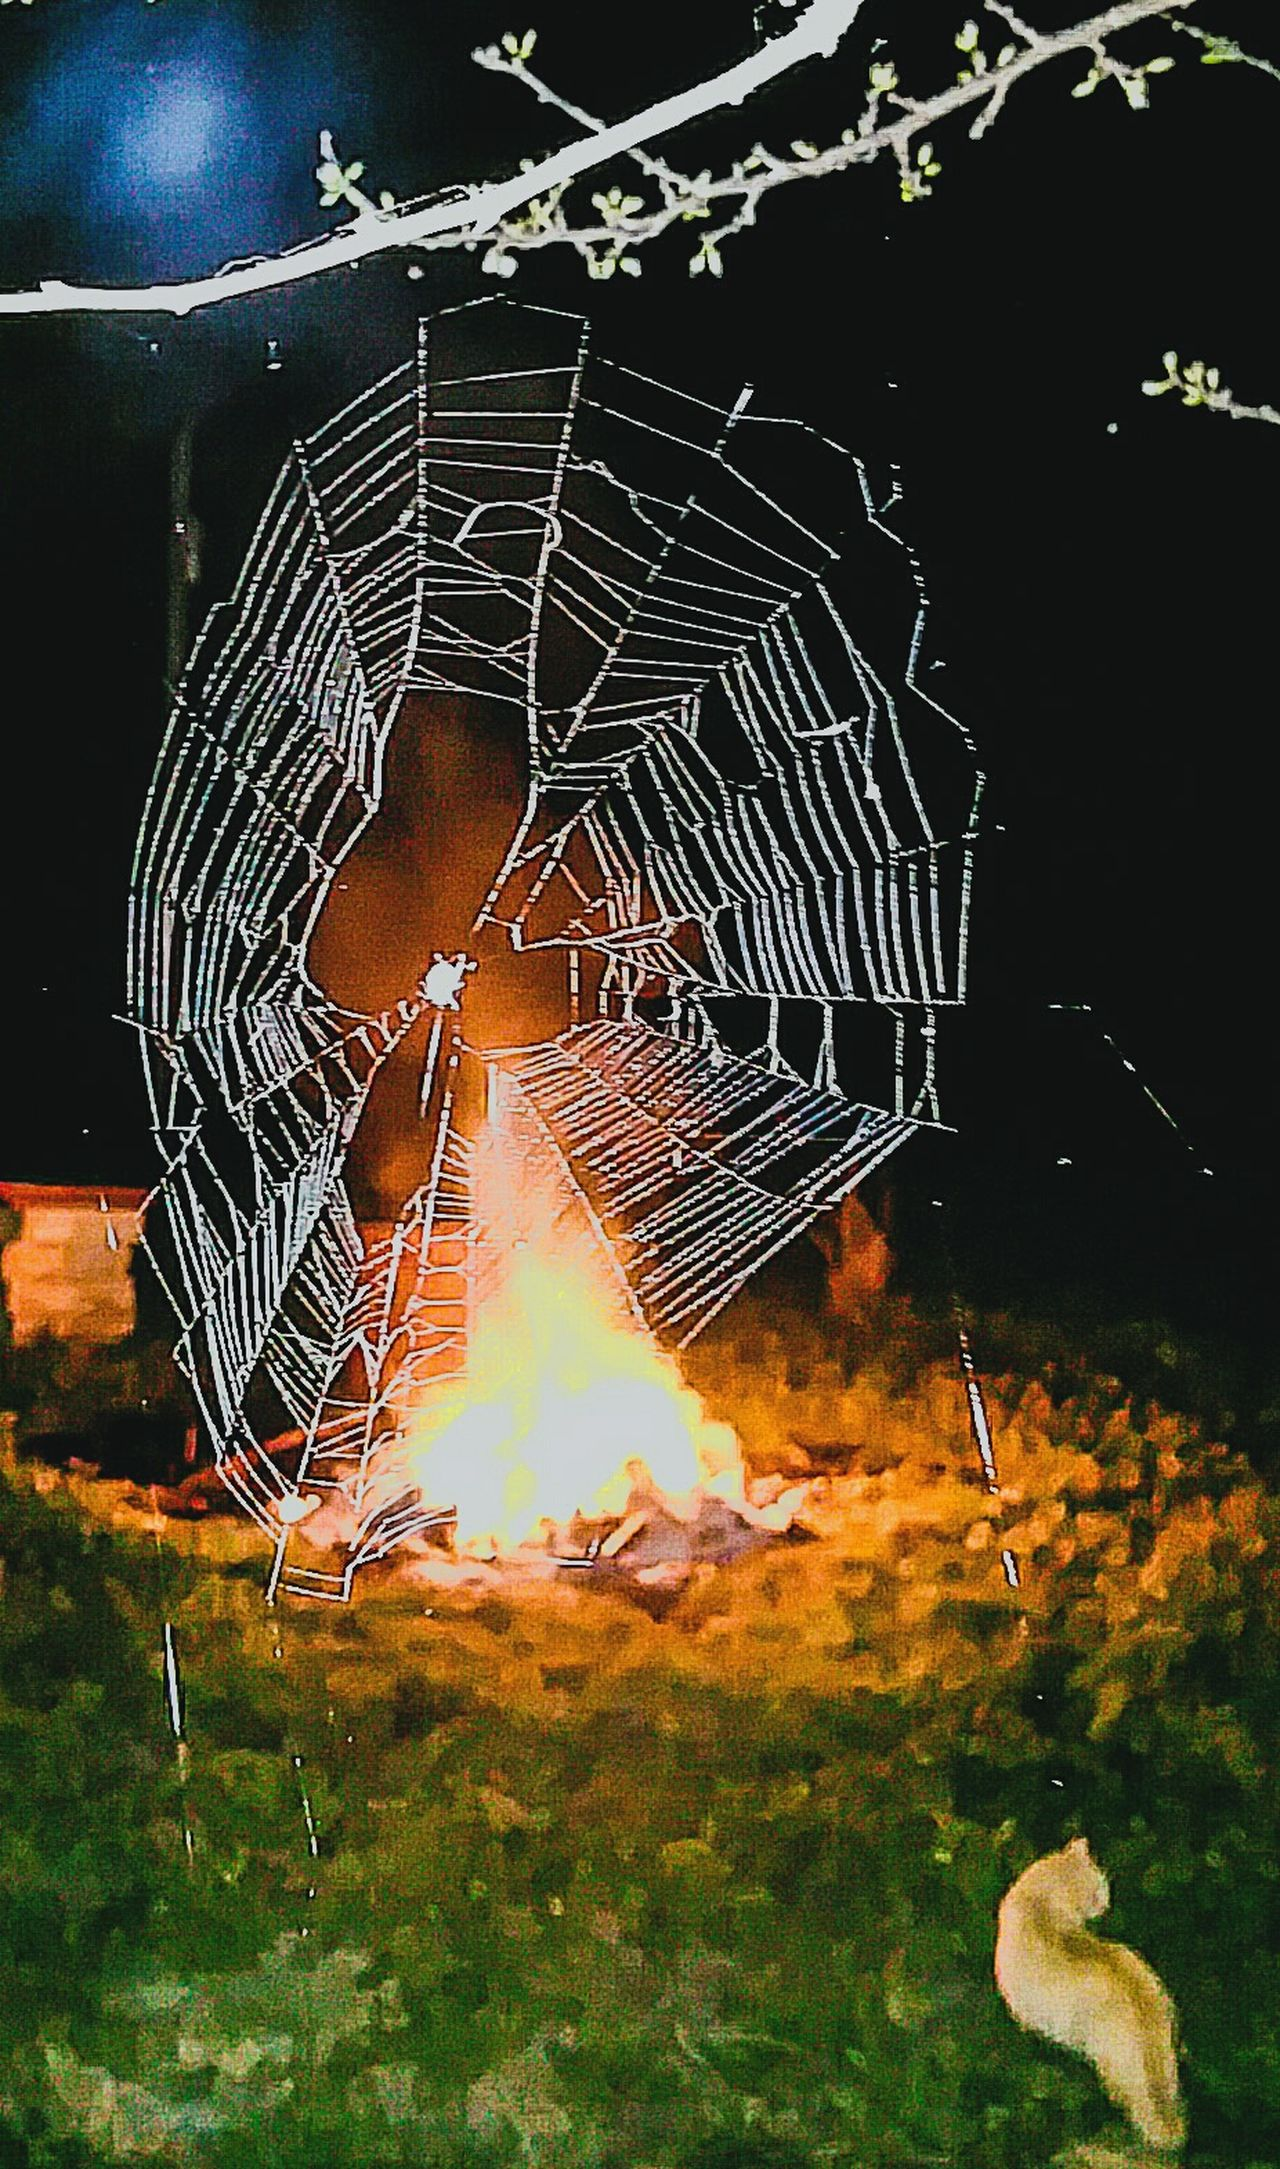 Night Sport Burning Outdoors Close-up Heat - Temperature No People Fire Flame Backgrounds Complexity Macro Glowing Arachnid Design Detail Insect Macro Spider Illuminated Night Insects Close Up Web Spider Web Backlit Fire Background